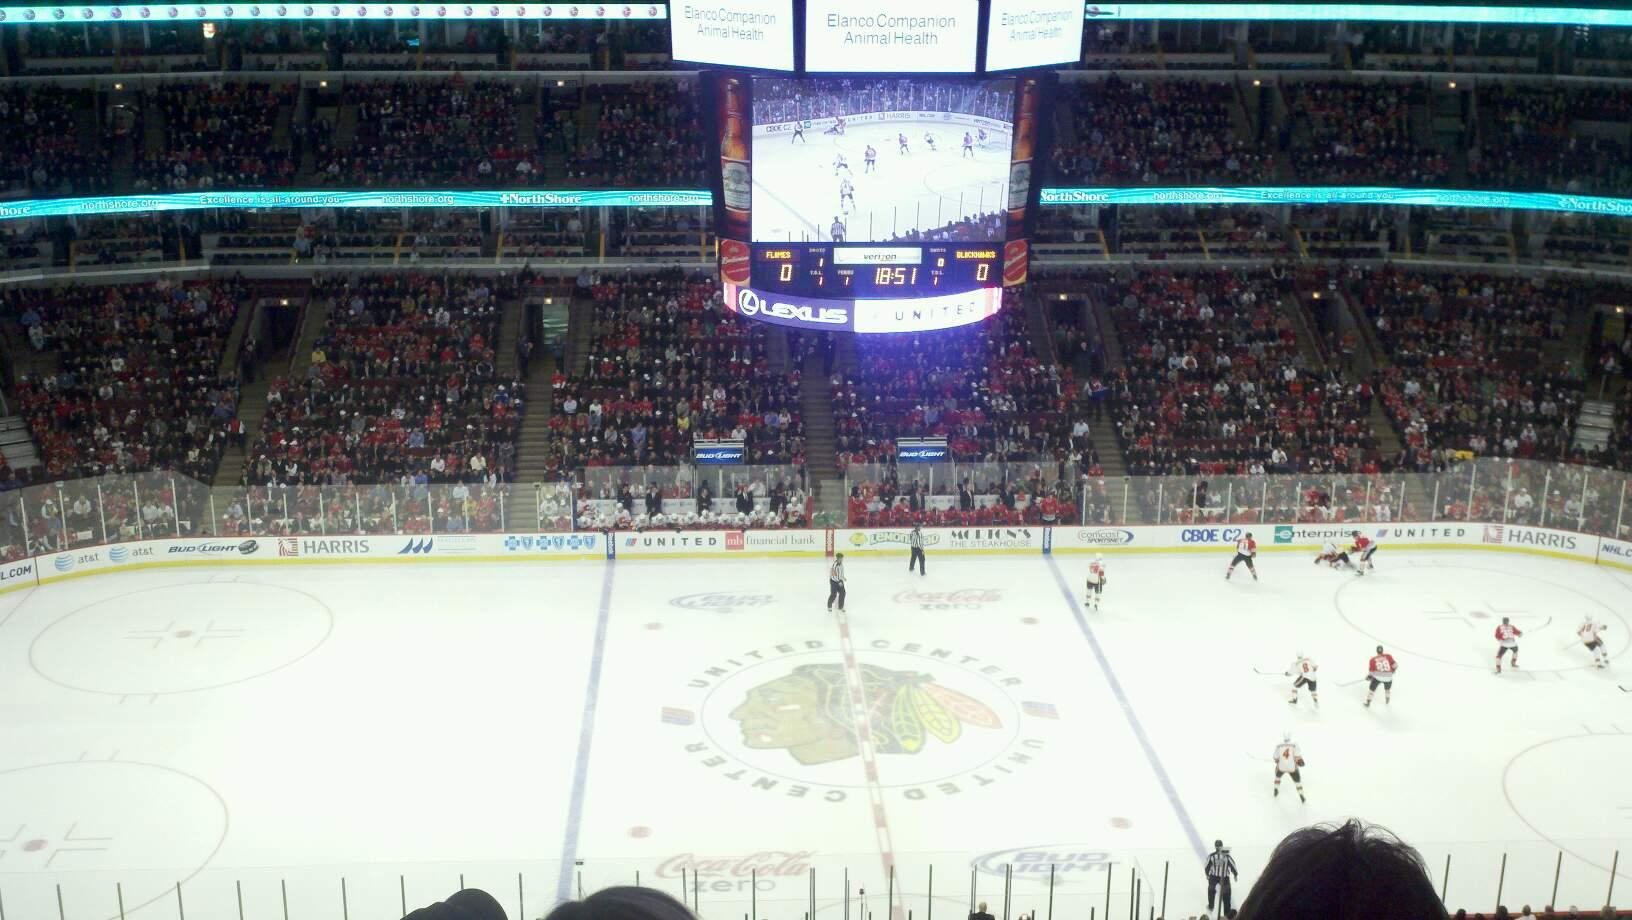 United Center Section 318 Row 9 Seat 8